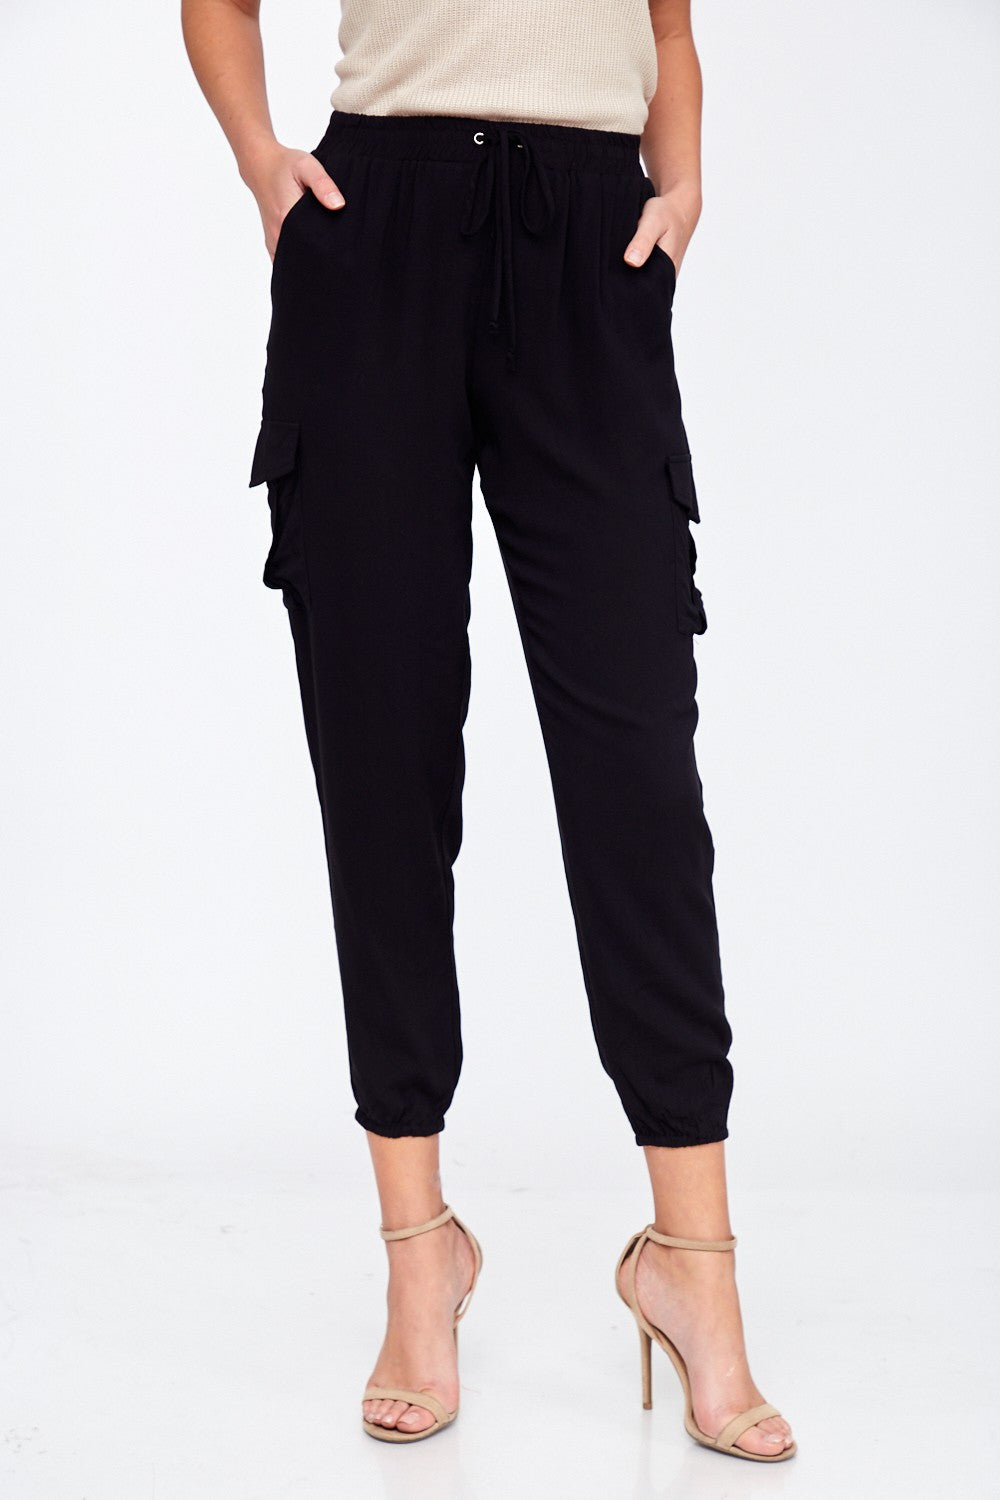 Black Cropped Cargo Pants